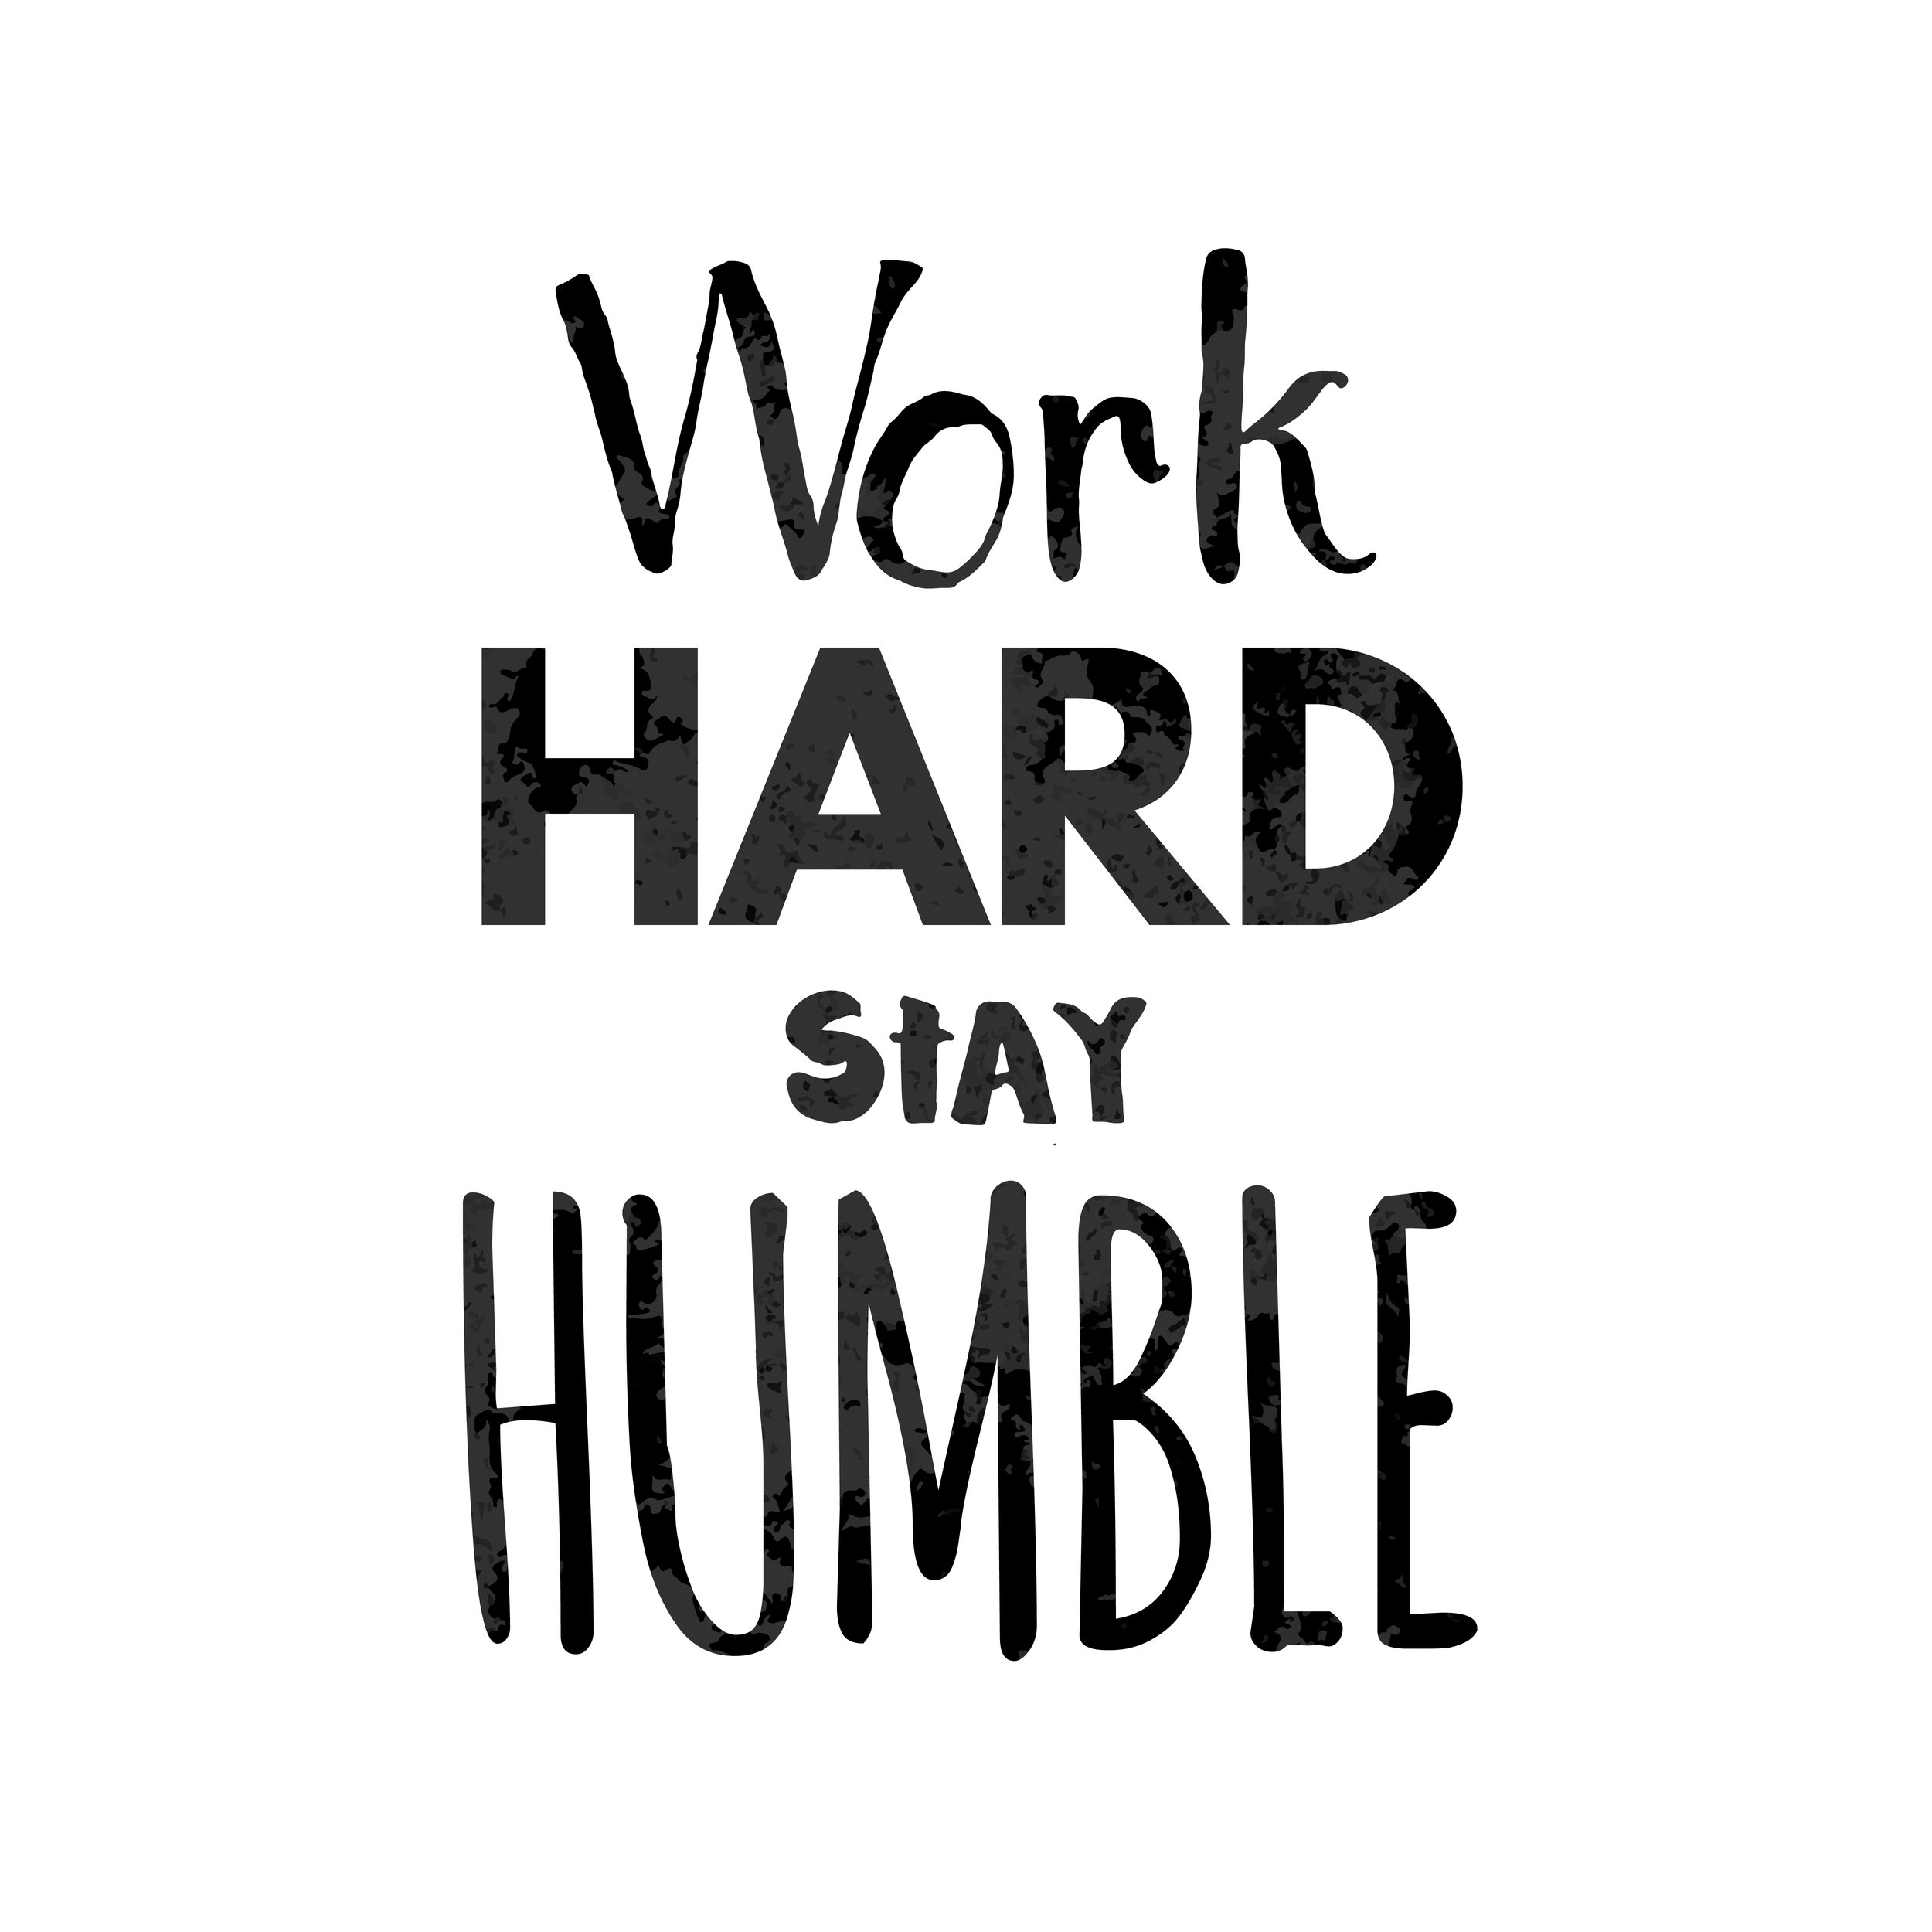 work hard stay humble words.jpg